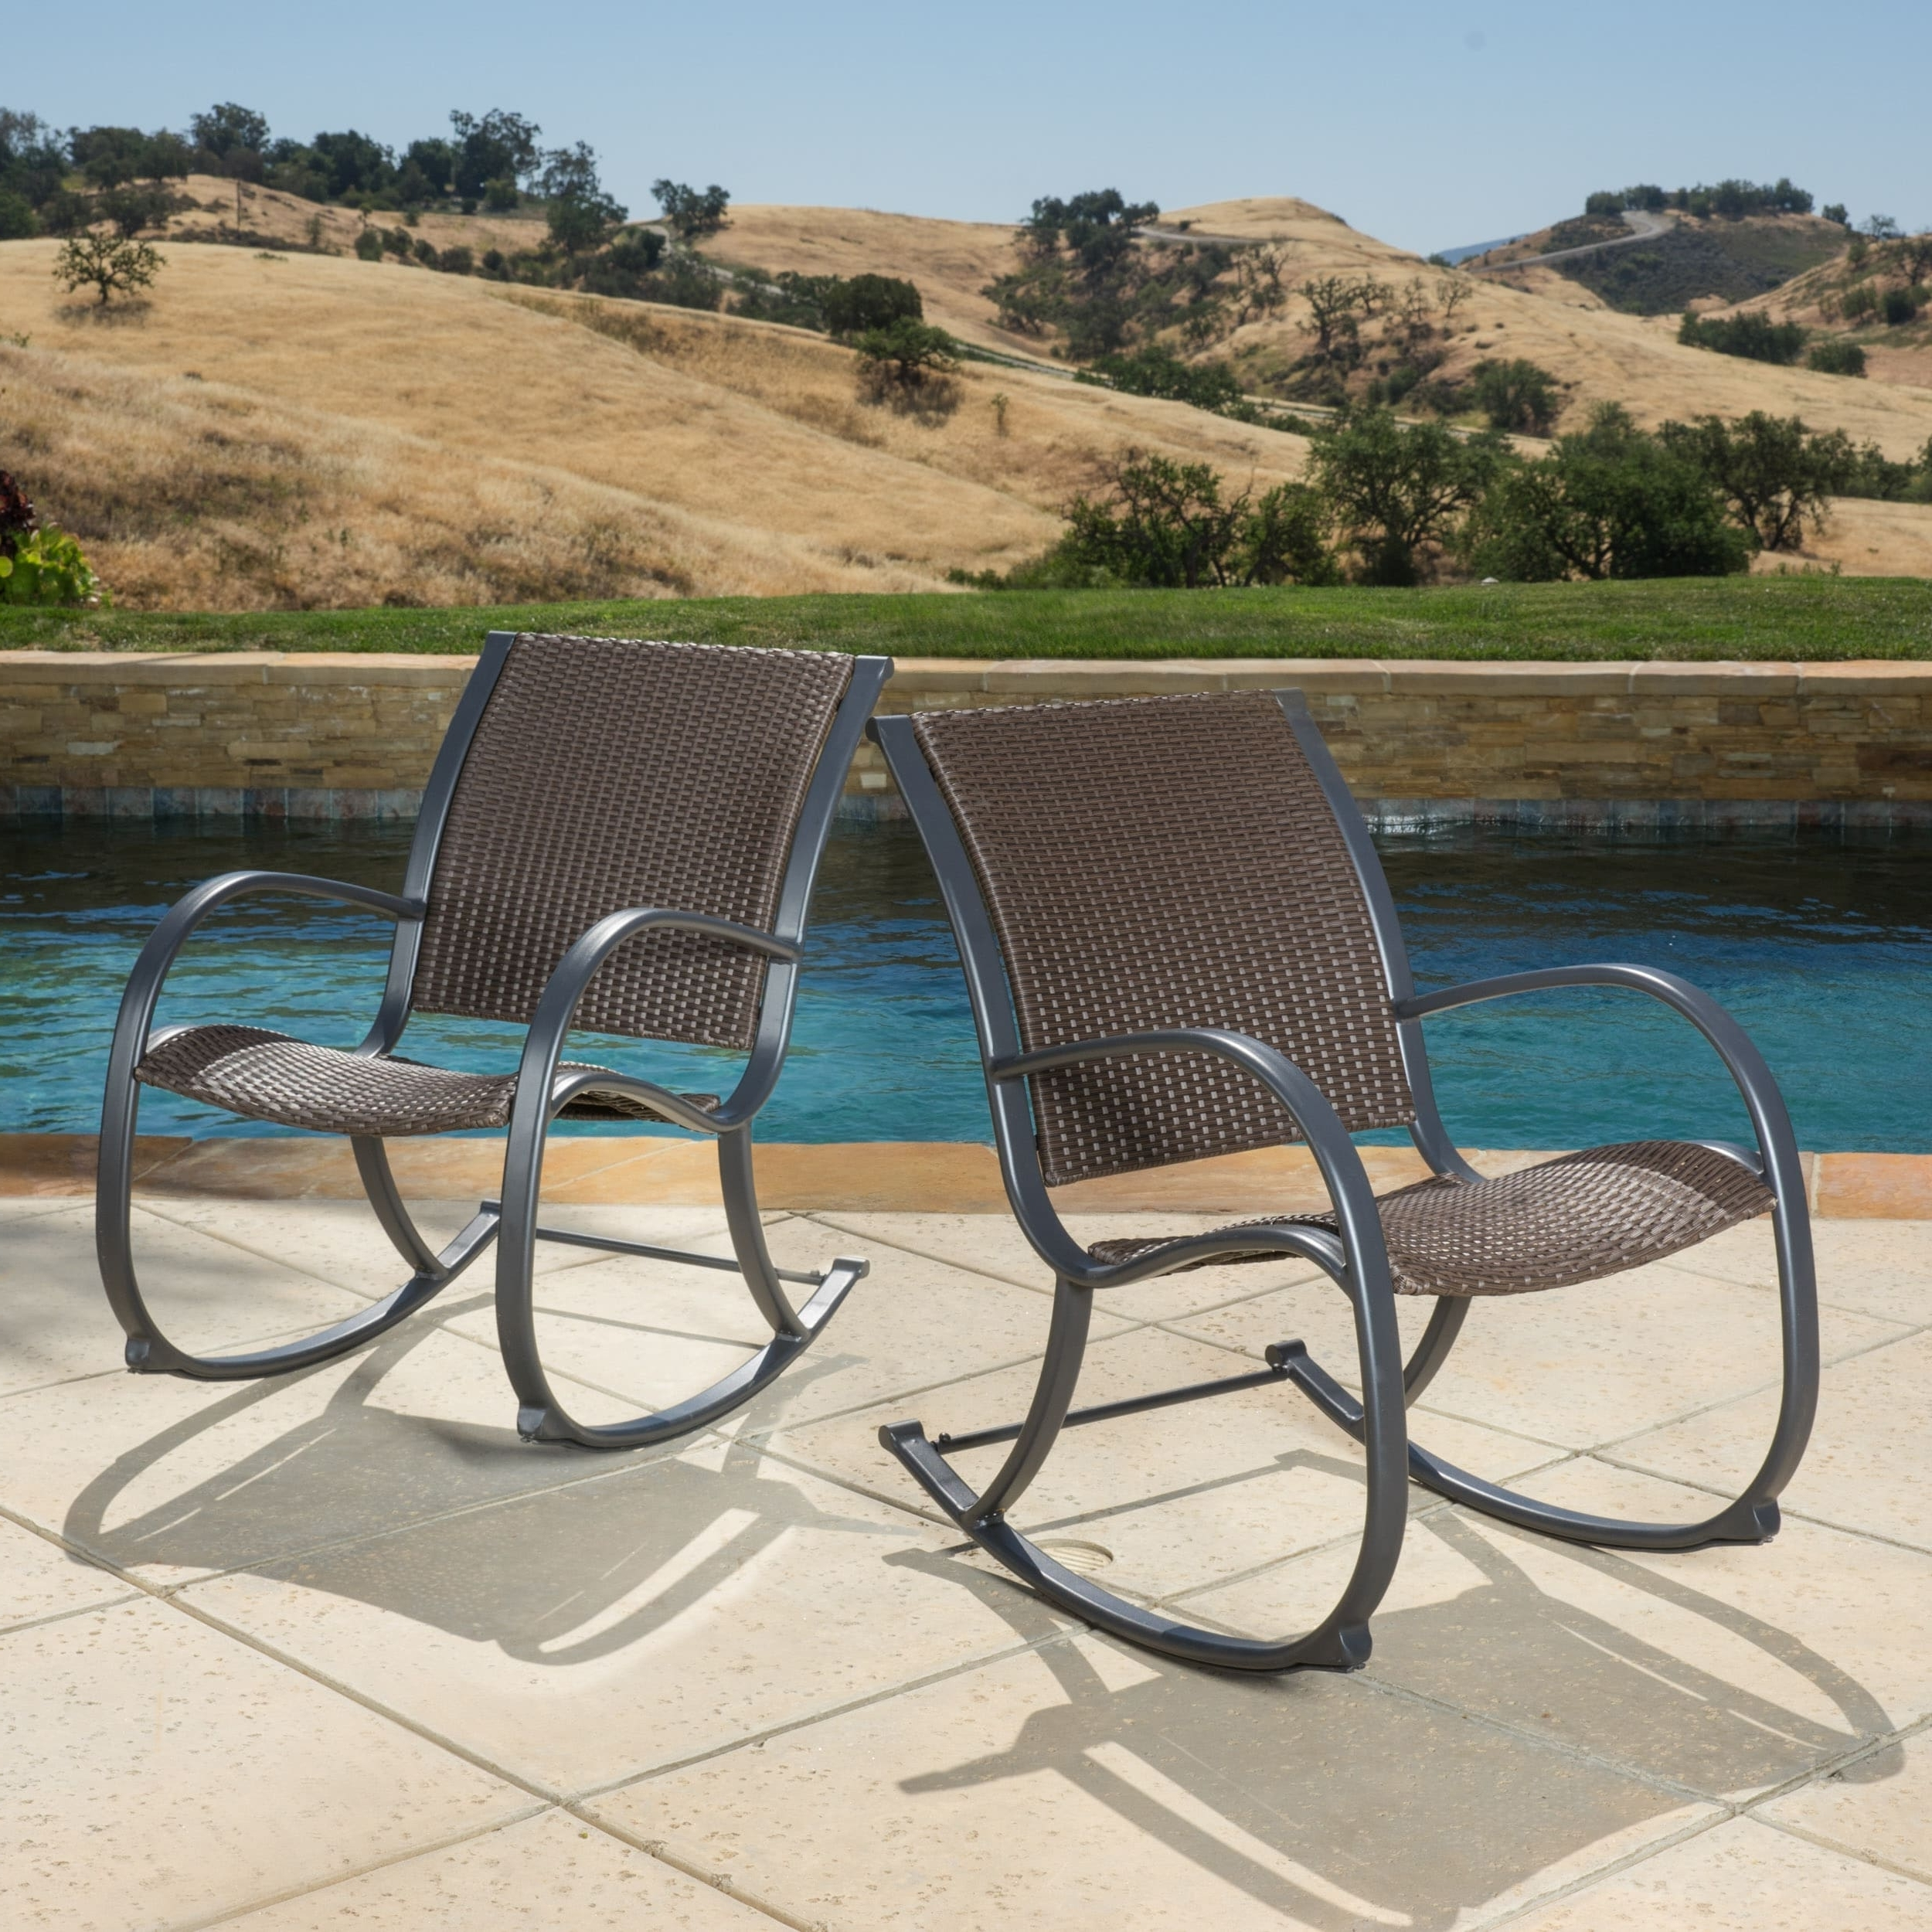 Best And Newest Shop Gracie's Outdoor Wicker Rocking Chair (Set Of 2)Christopher Intended For Wicker Rocking Chairs Sets (View 12 of 15)